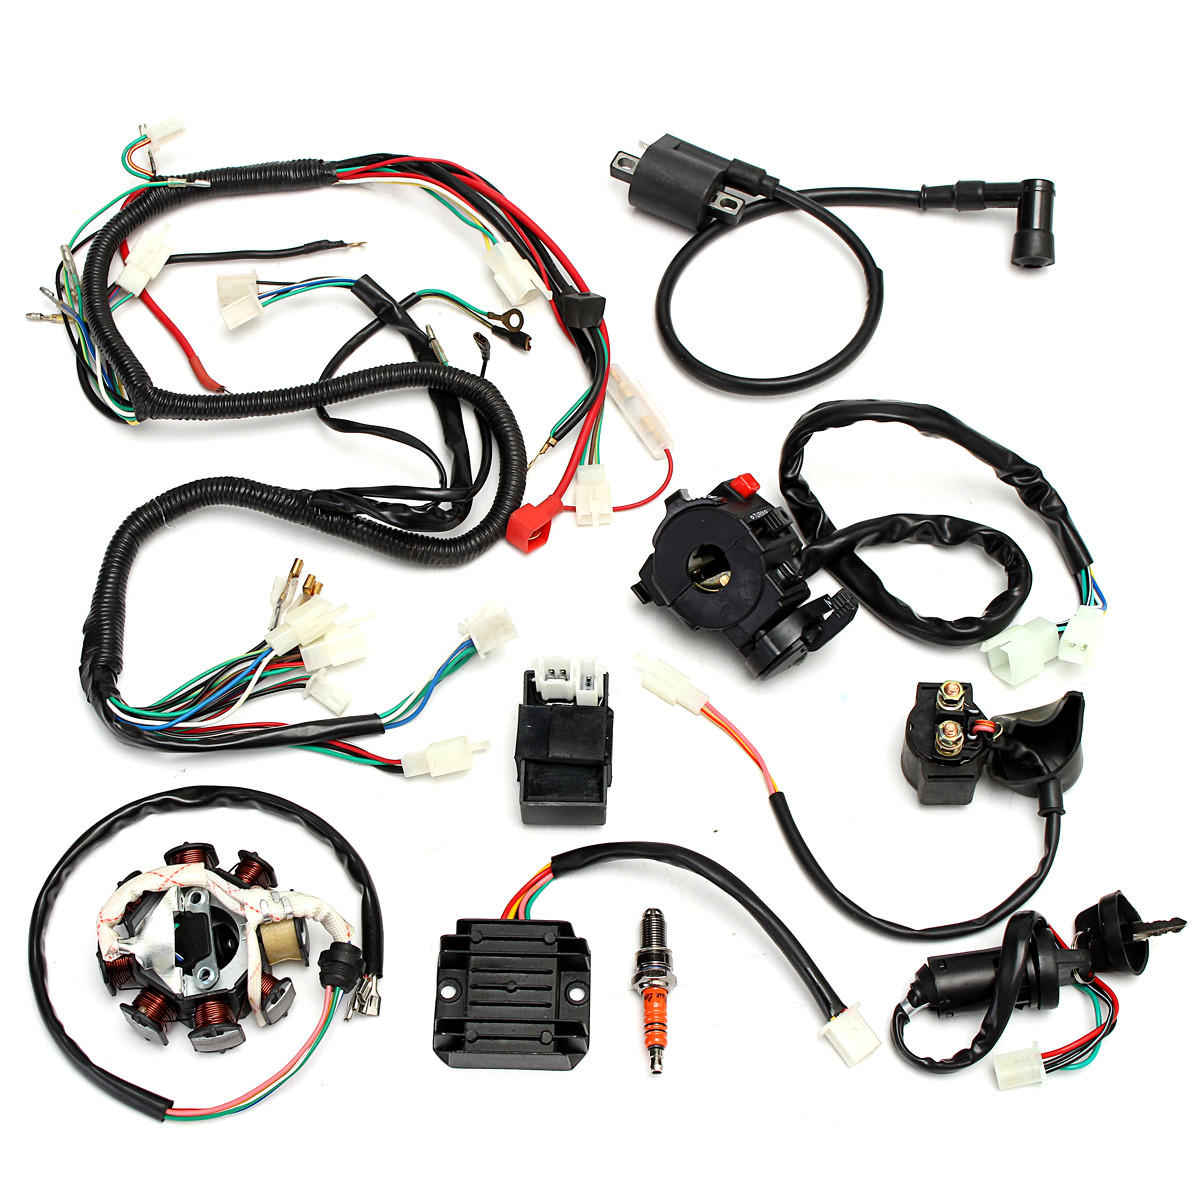 Atv Wiring Harness Complete - Wiring Diagram Then on oxygen sensor extension harness, electrical harness, engine harness, cable harness, suspension harness, amp bypass harness, pet harness, fall protection harness, pony harness, battery harness, obd0 to obd1 conversion harness, maxi-seal harness, radio harness, alpine stereo harness, nakamichi harness, safety harness, dog harness,